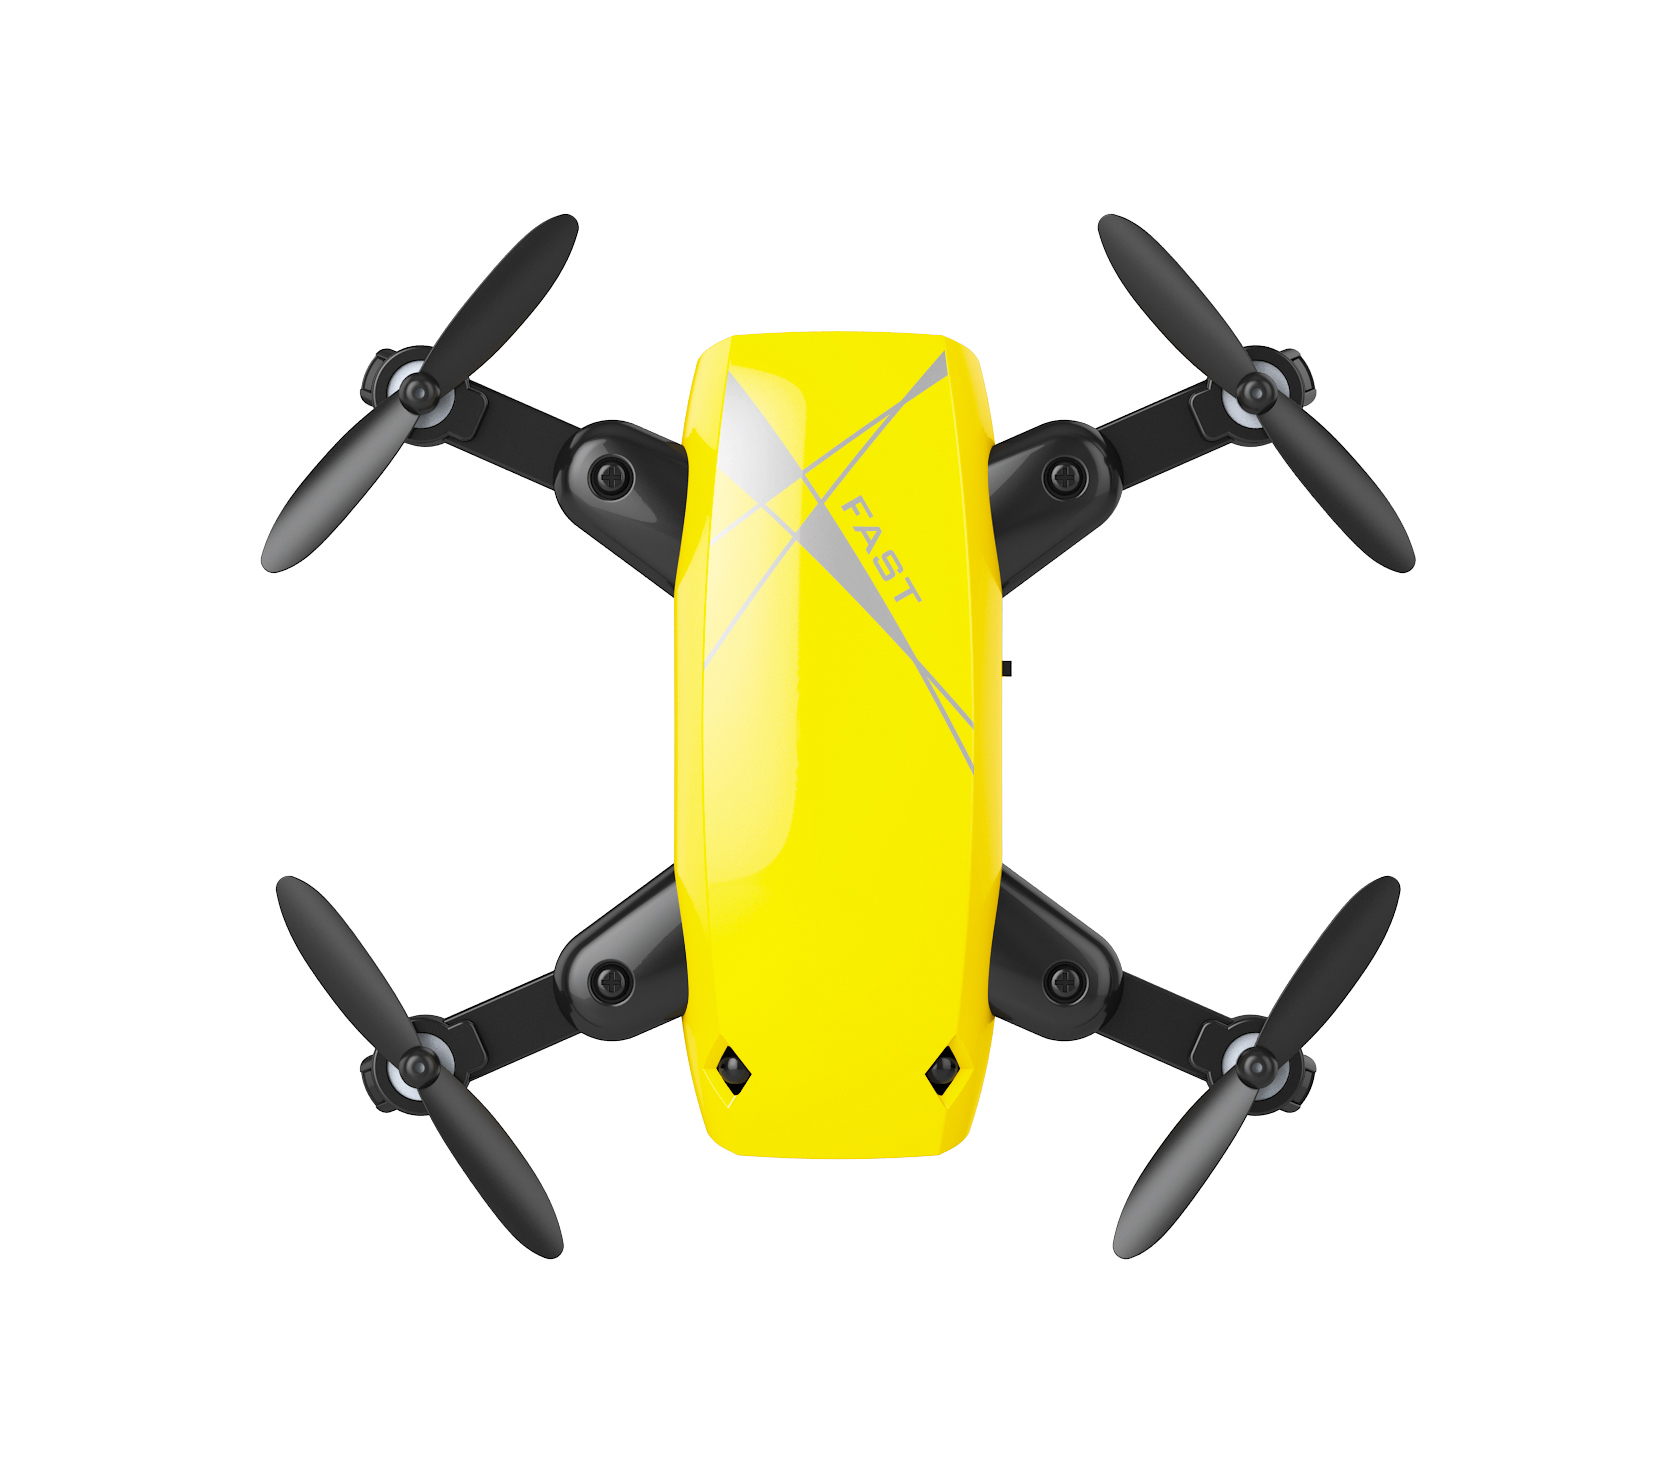 Hot 2.4g 4ch 6-axis smallest rc camera drone